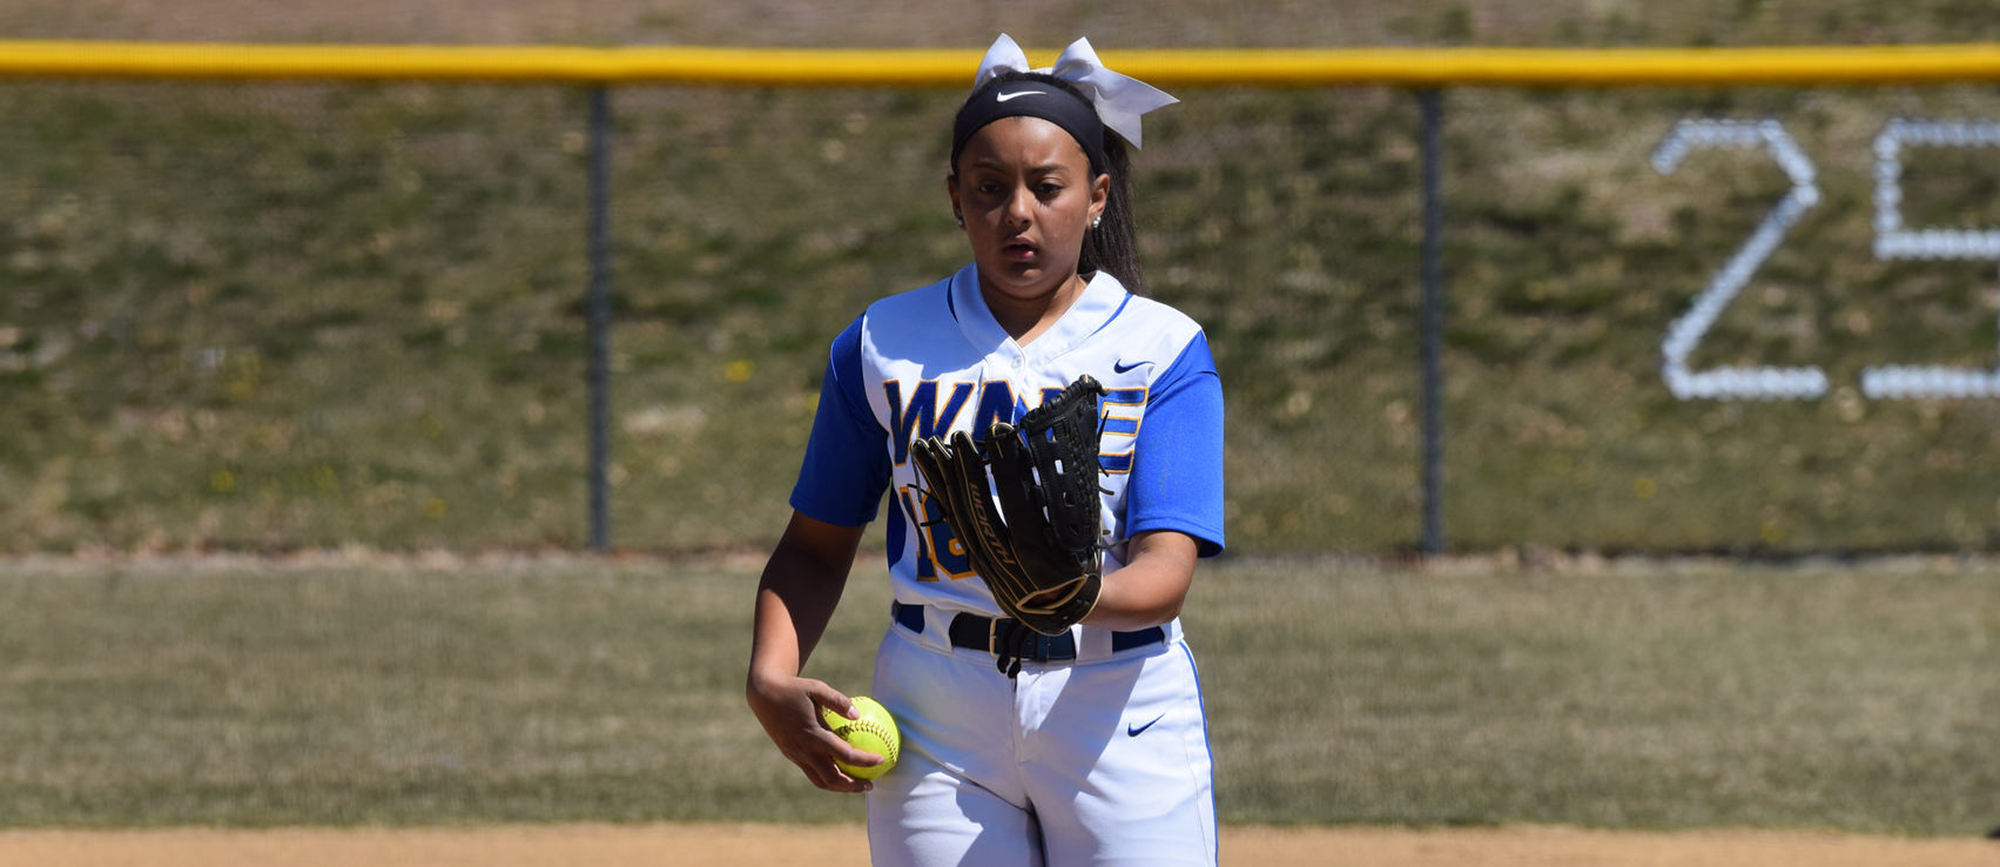 Junior Paige Uliase turned in a shutout performance in Western New England's season-opening win over Staten Island on Saturday. (Photo by Rachael Margossian)